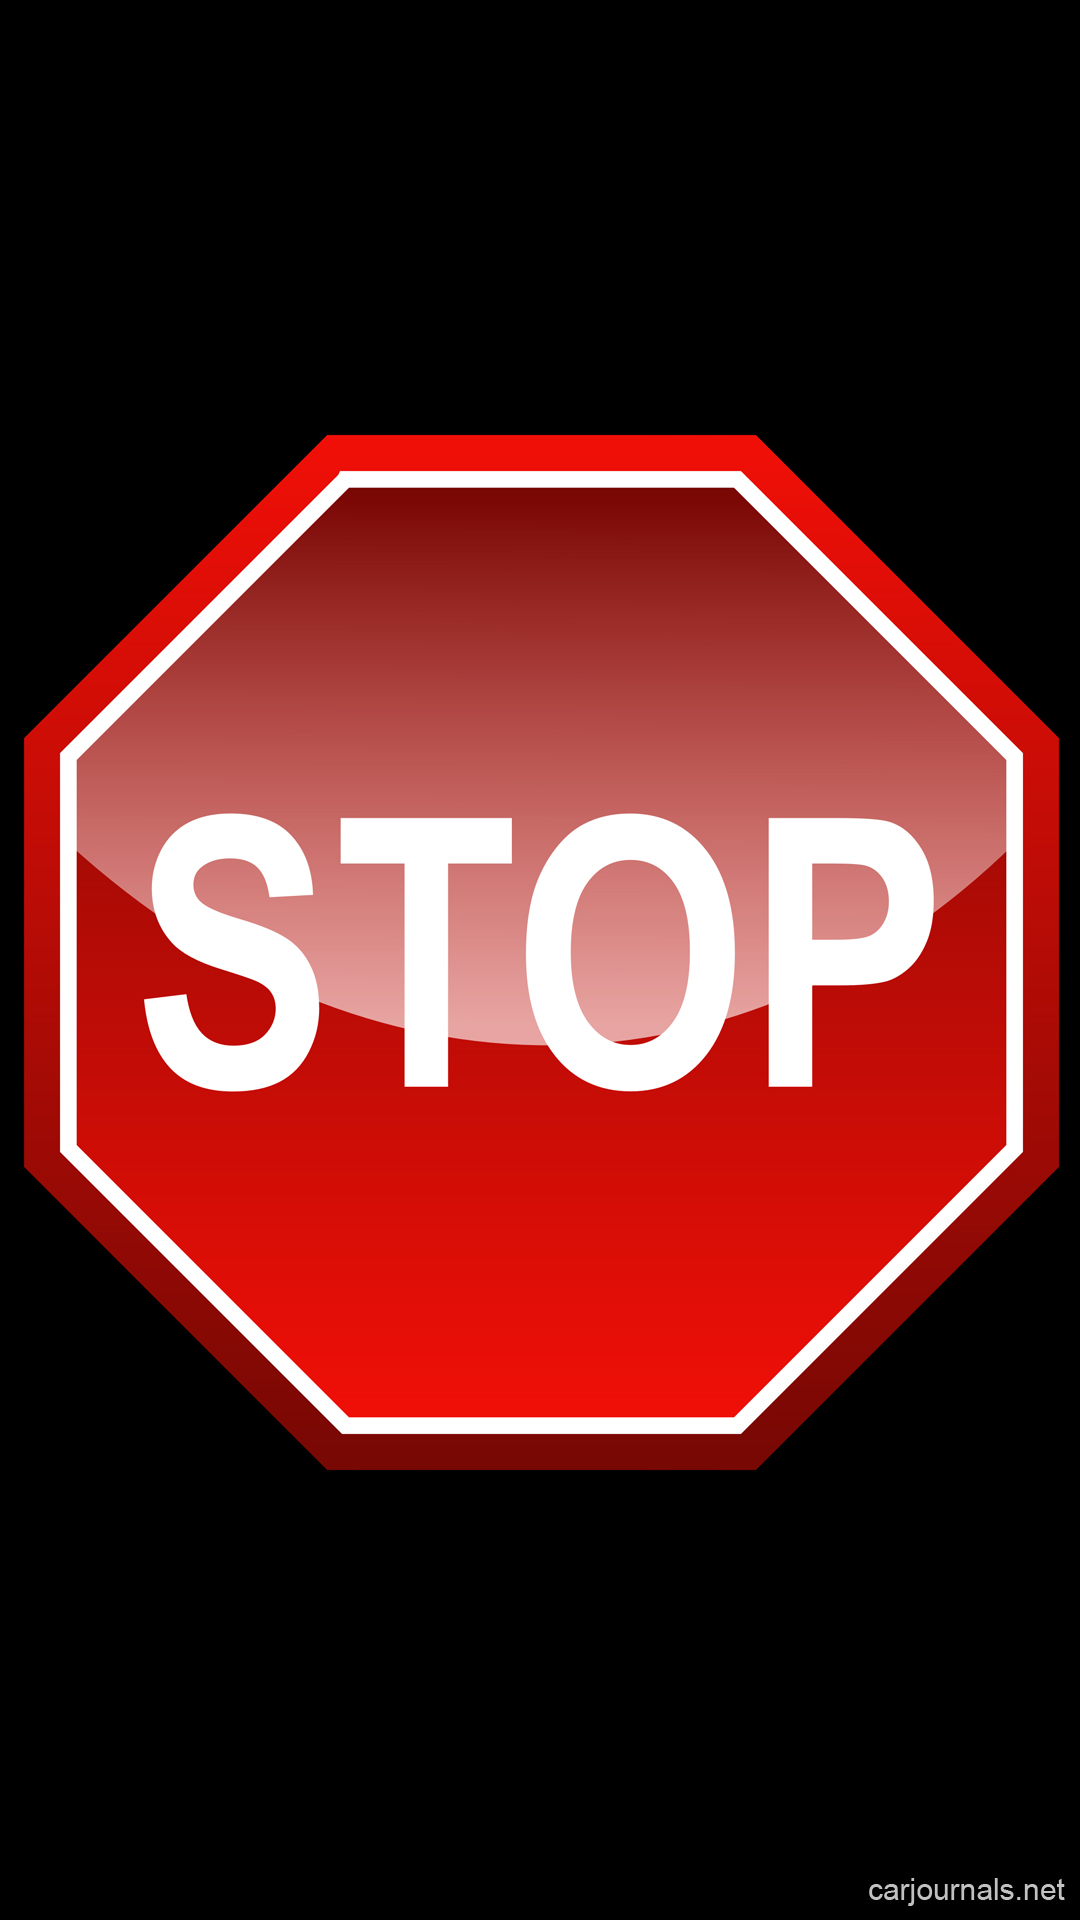 Stop Sign iPhone Wallpaper - Car journals